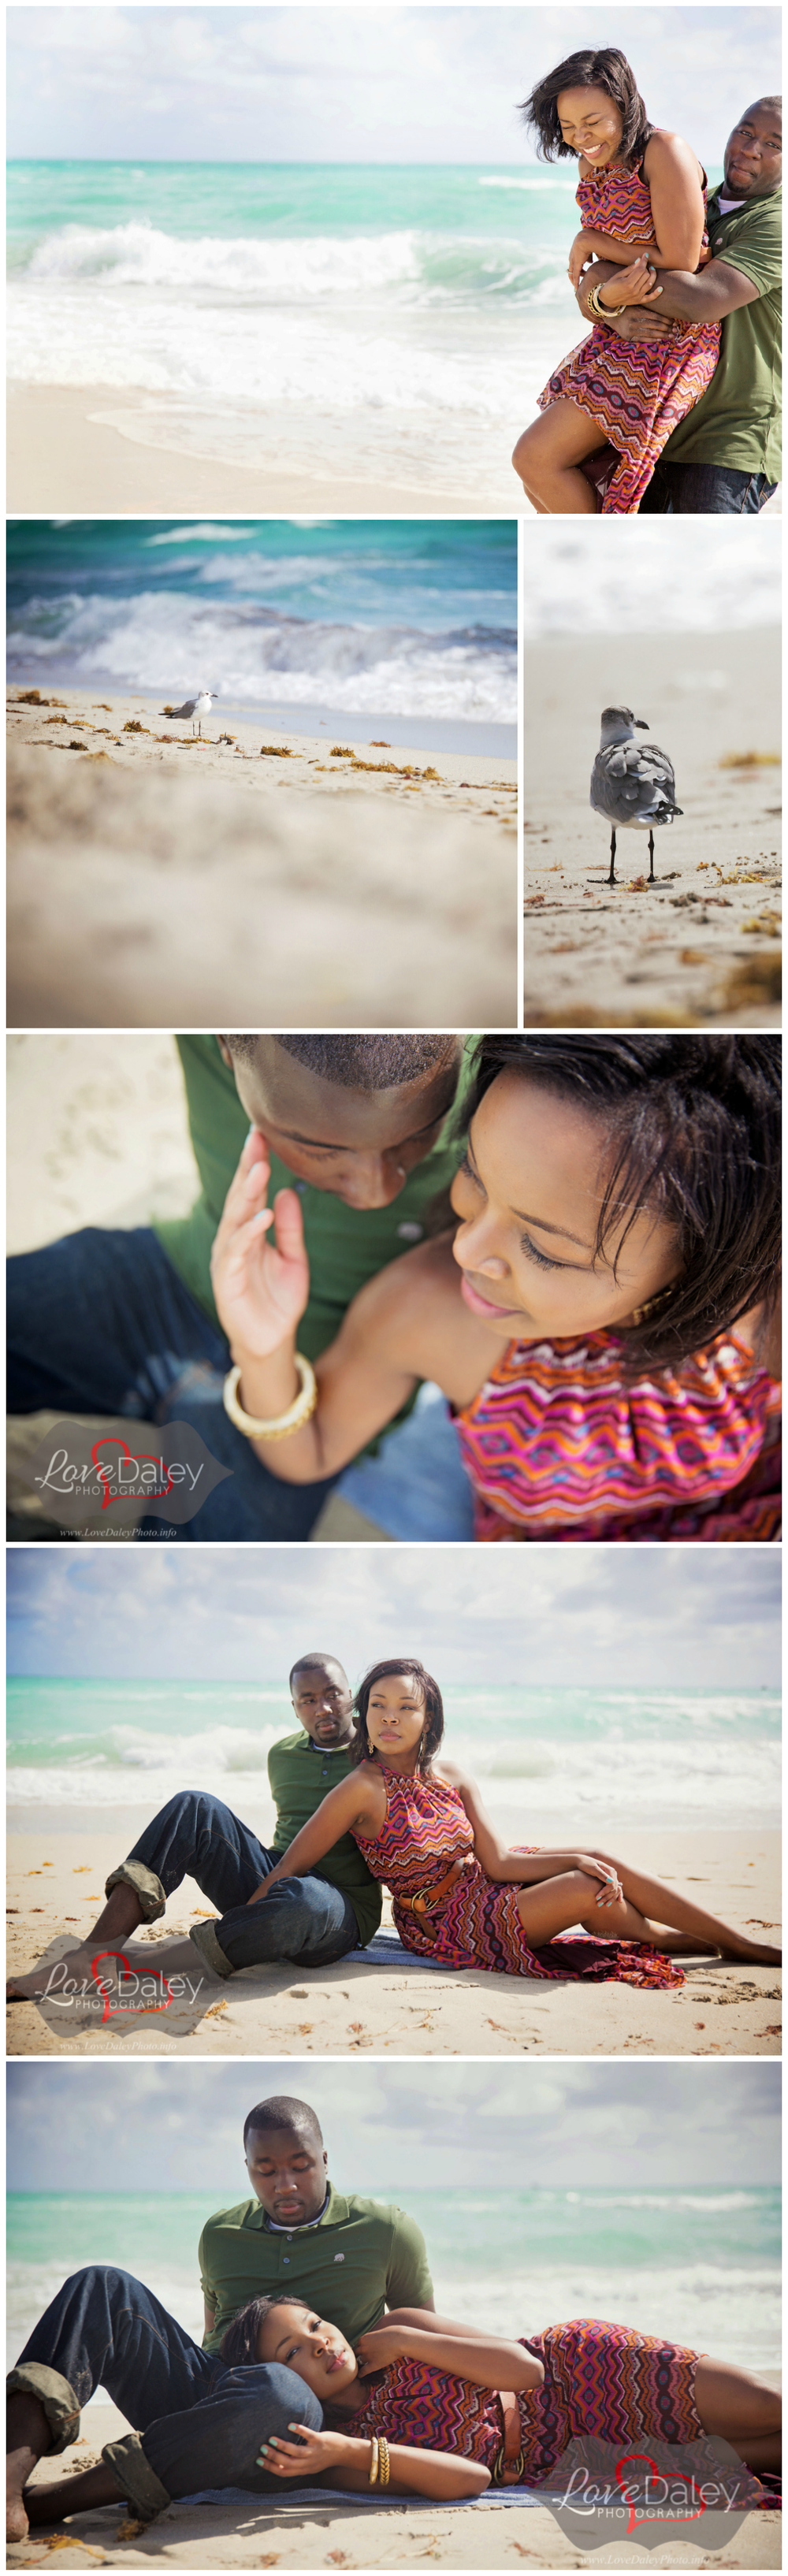 Ft.-Lauderdale-Beach-Engagement-Shoot-9